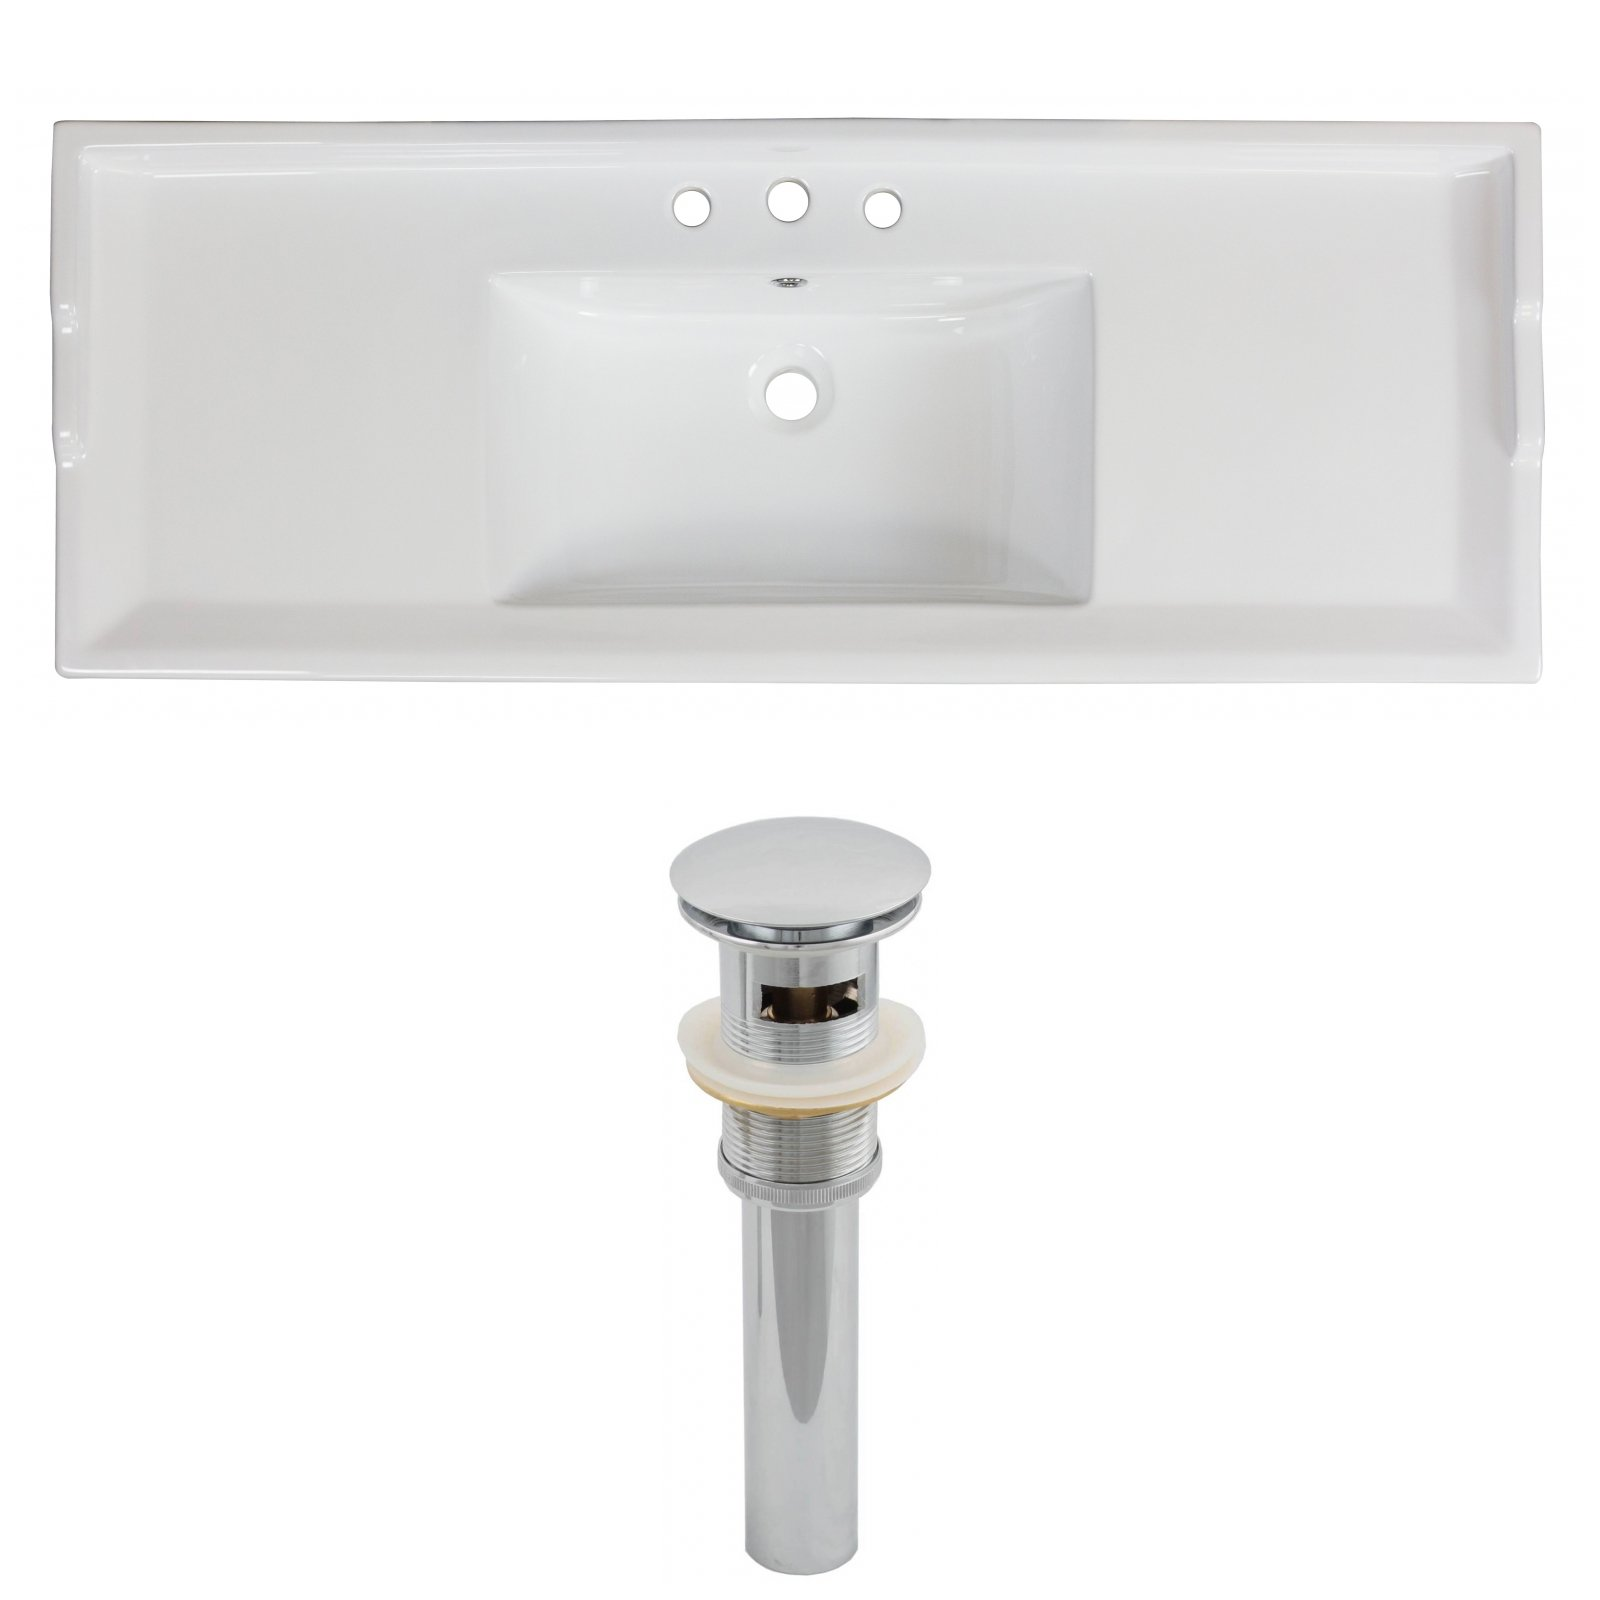 American Imaginations AI-15-595 Above Counter Square Vessel for Single Hole Faucet, 17.5-Inch x 17.5-Inch, White by American Imaginations